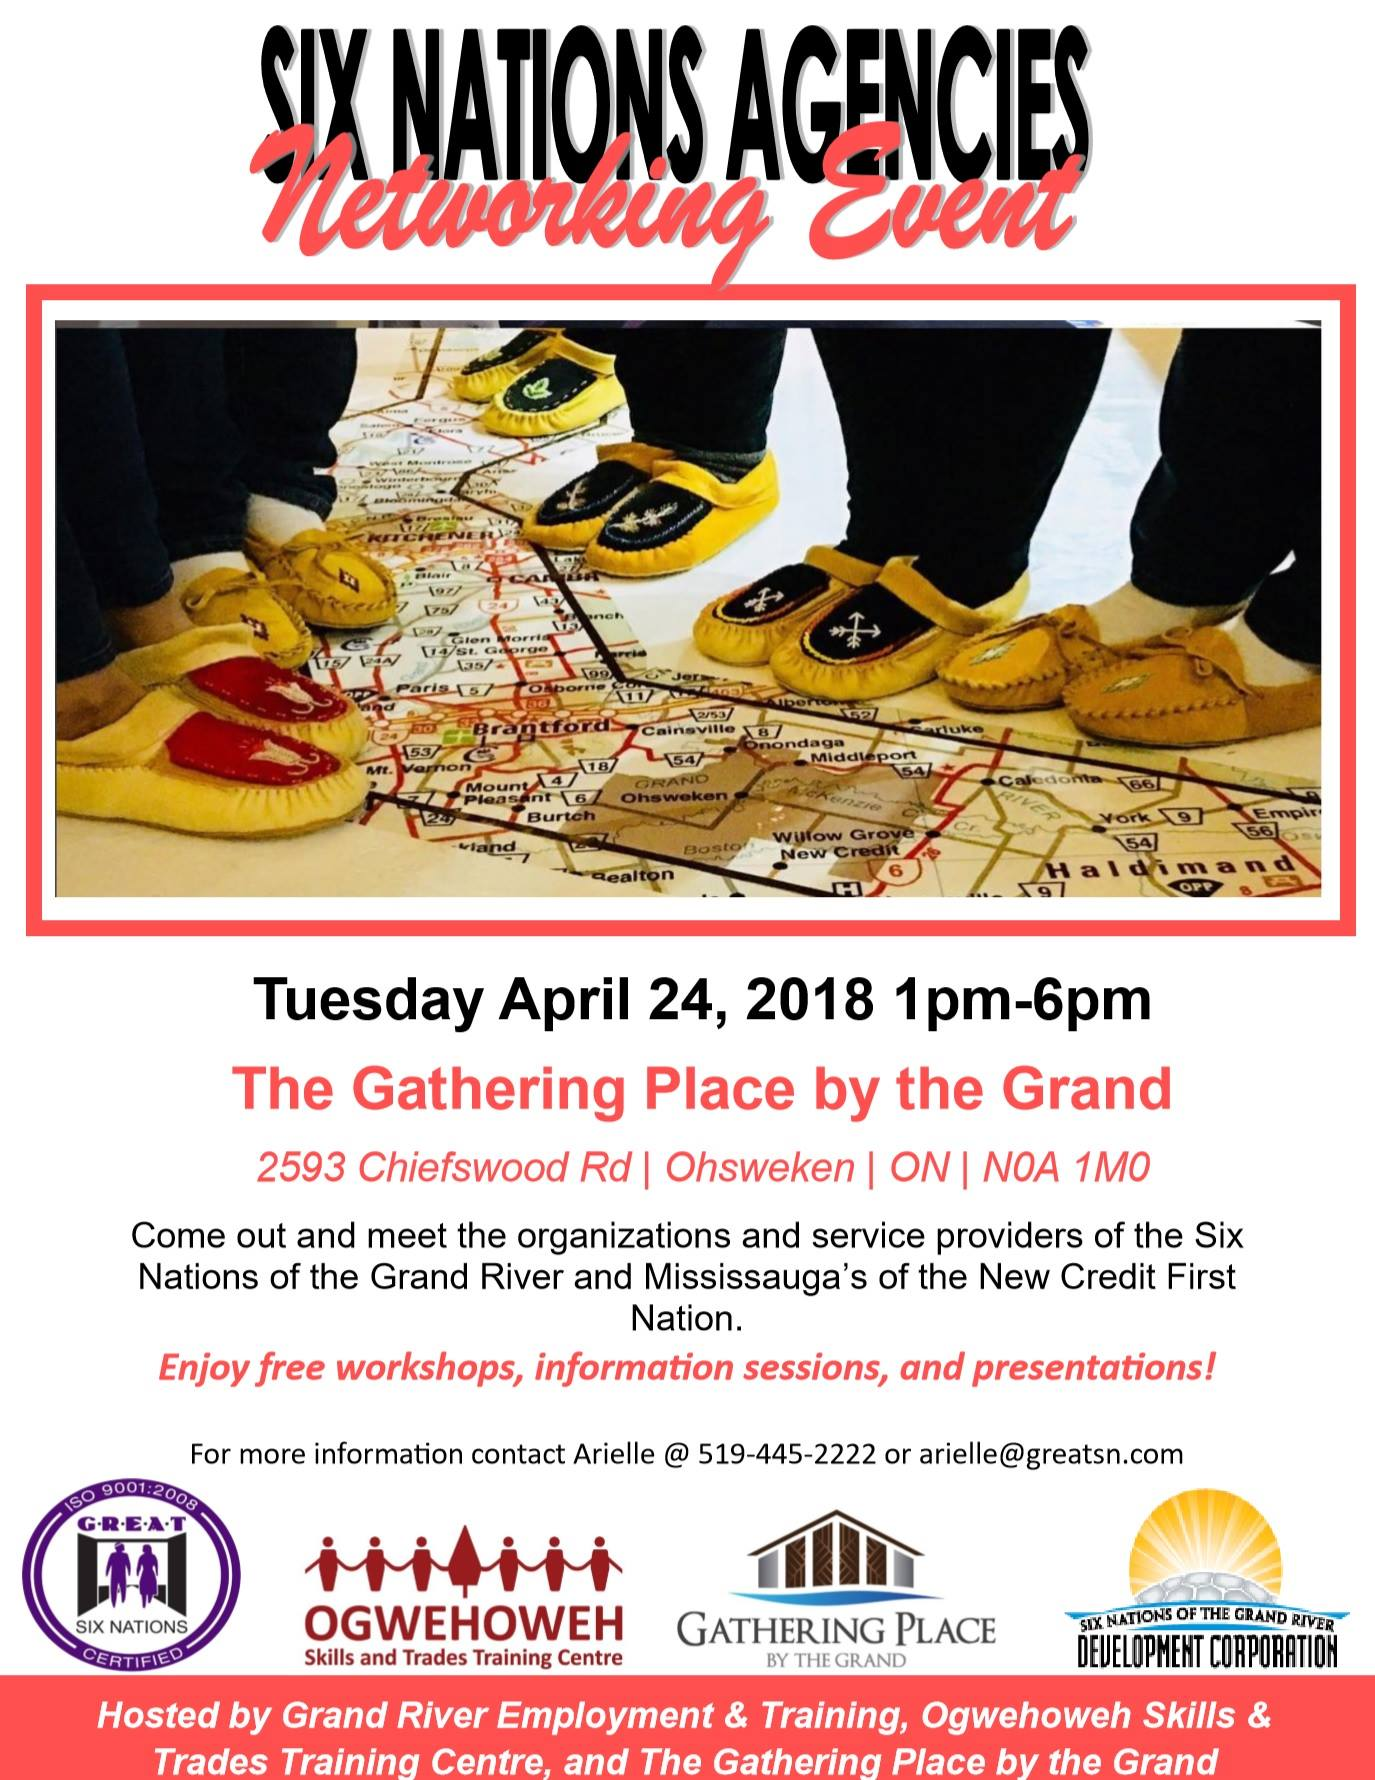 Six Nations Agencies Networking Event Poster